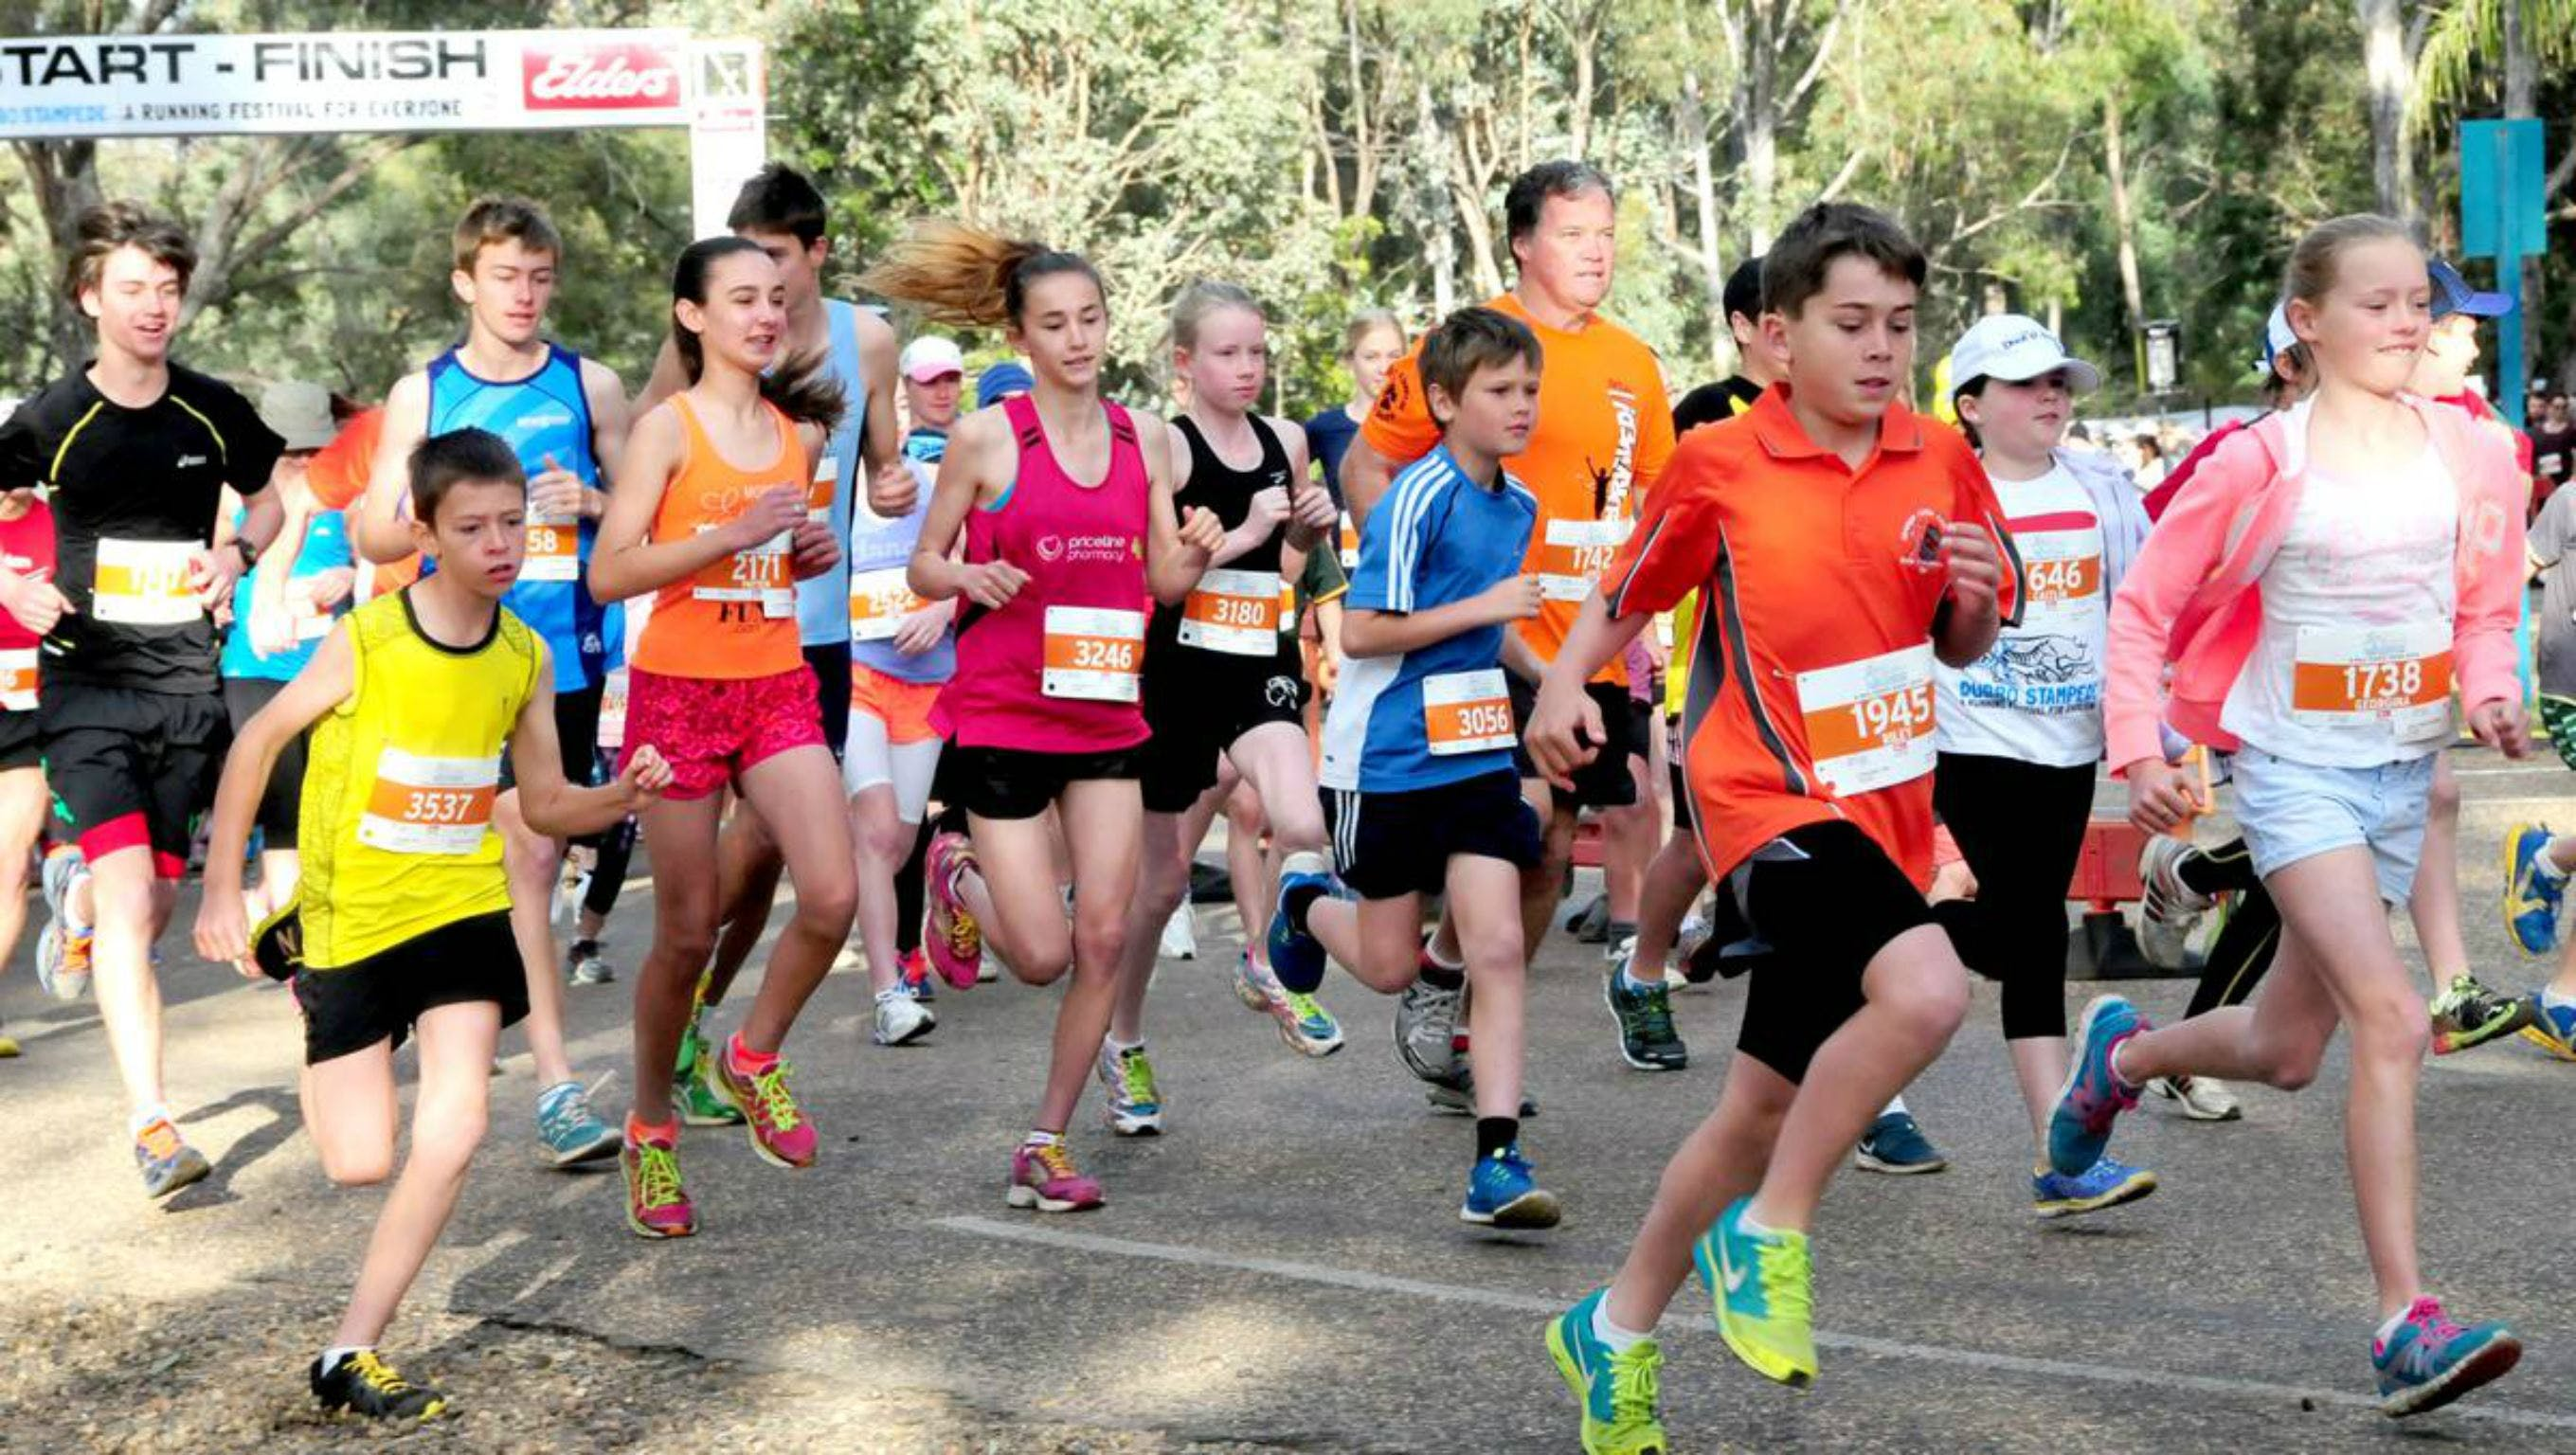 MAAS Group Dubbo Stampede Running Festival - Accommodation Search